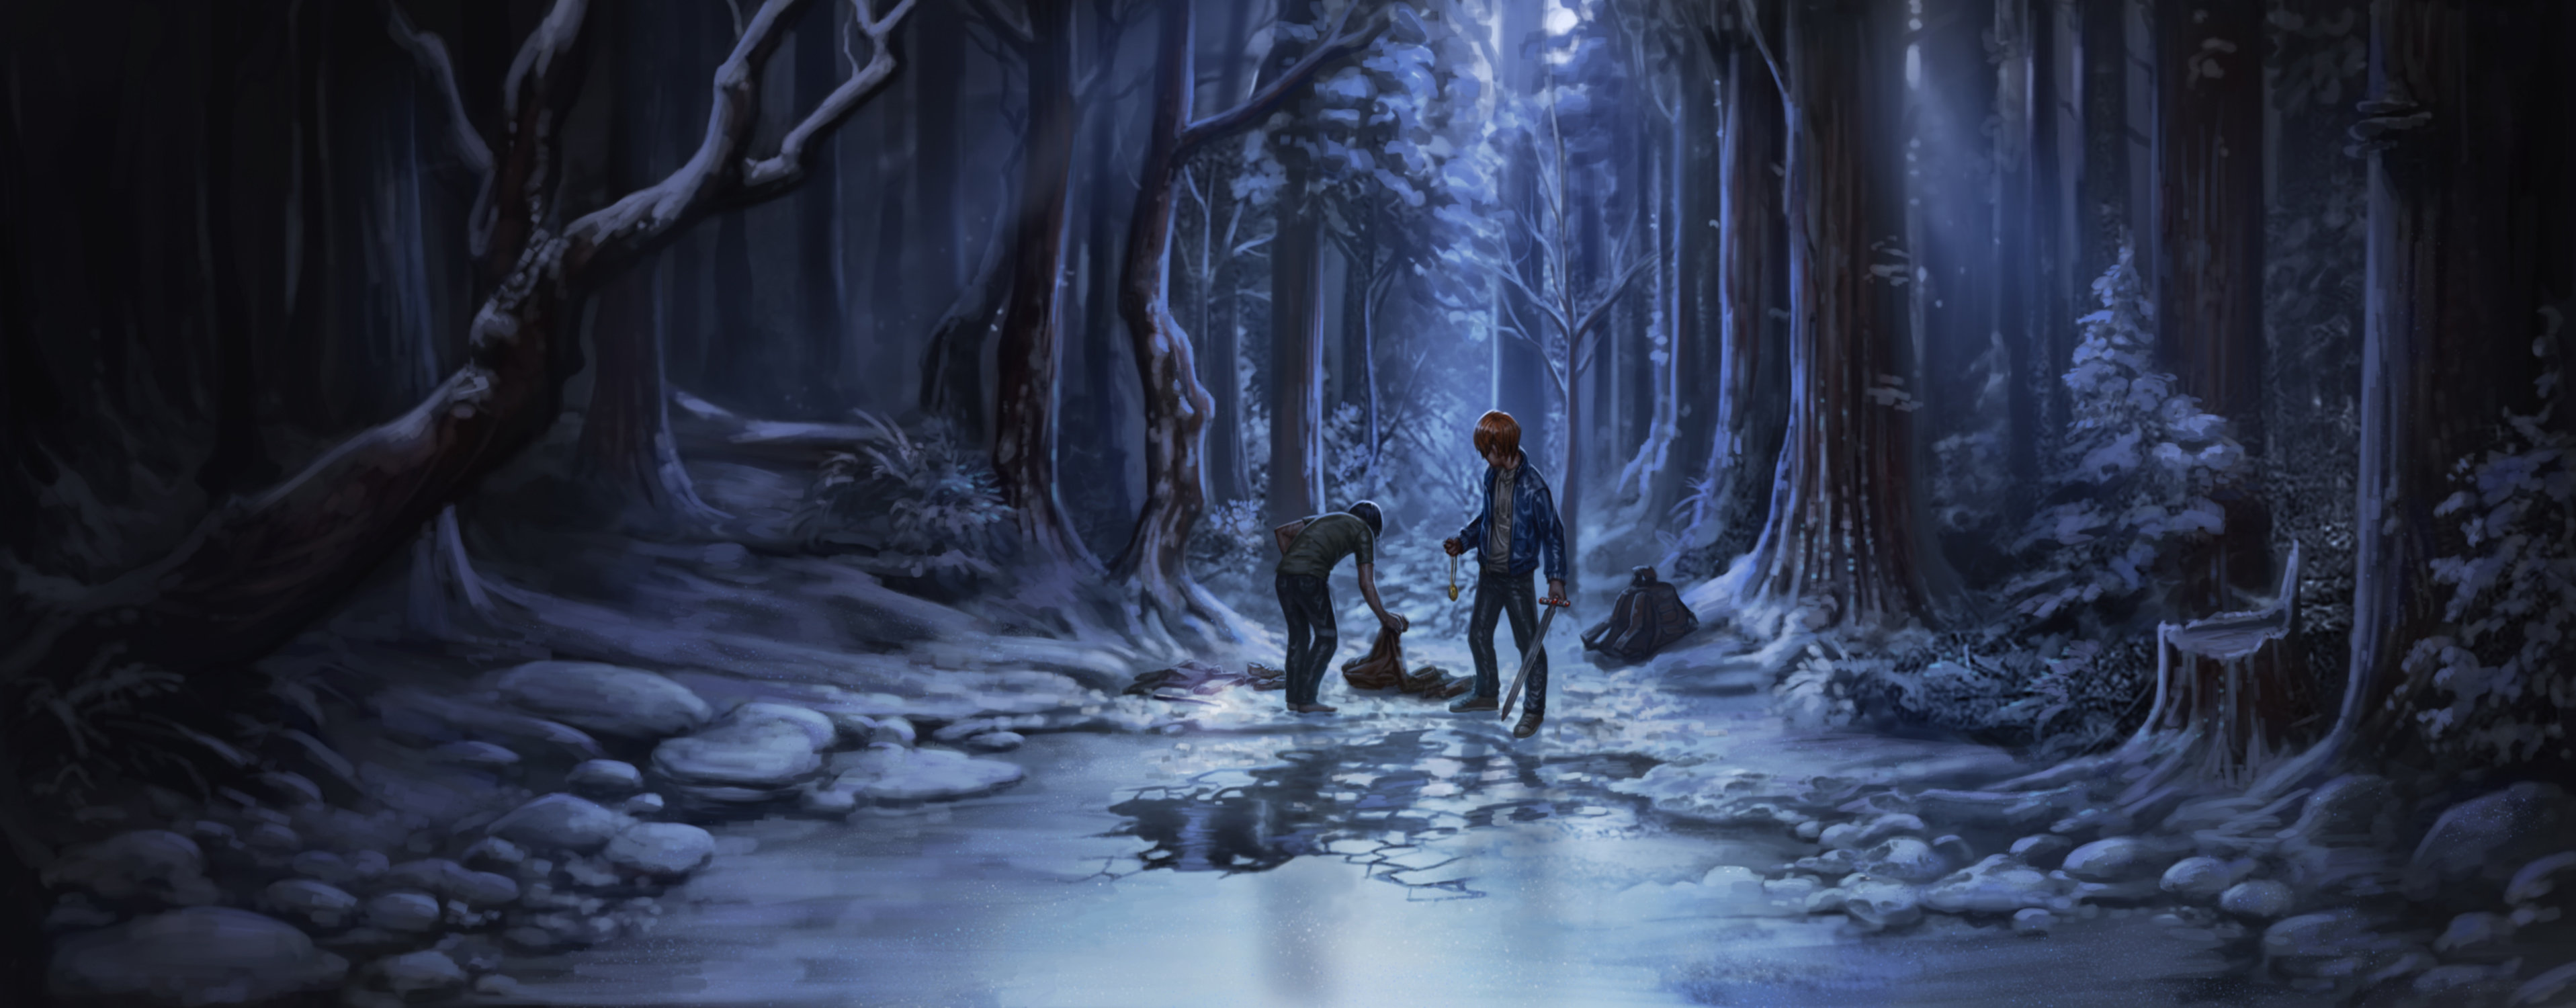 Ron saves Harry from the ice lake.